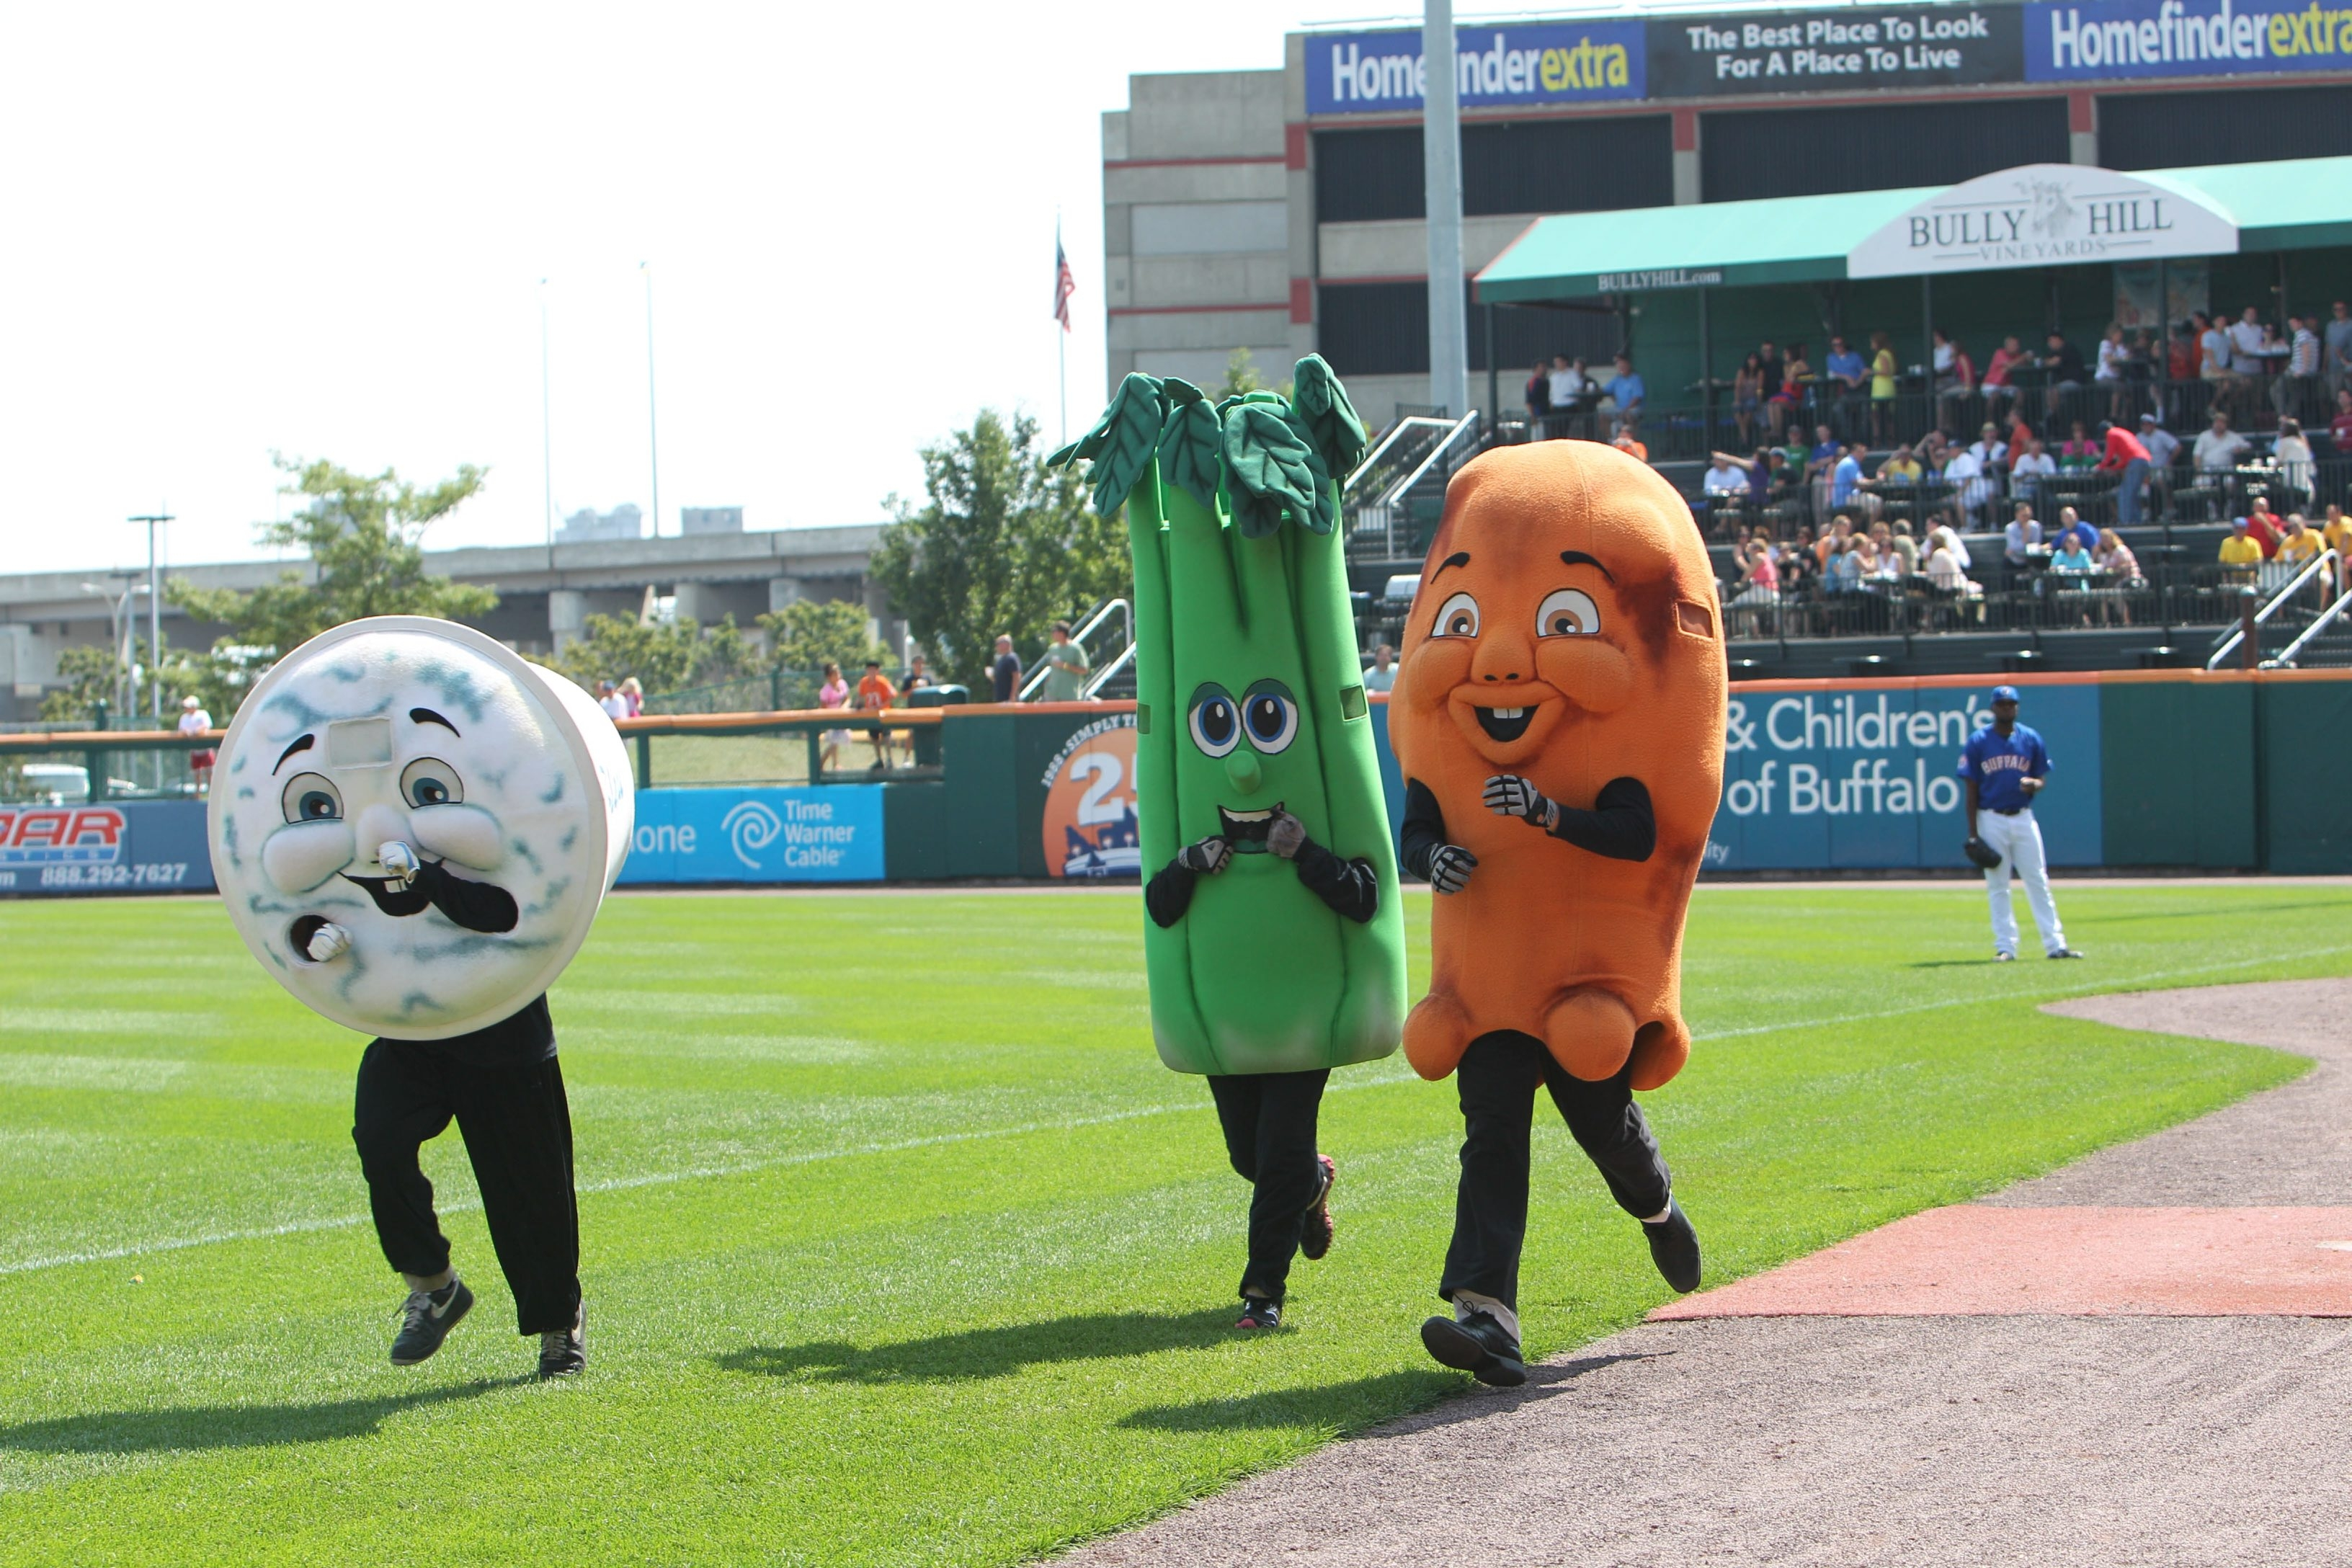 Celery falls behind its rivals in the race at Coca-Cola Field.